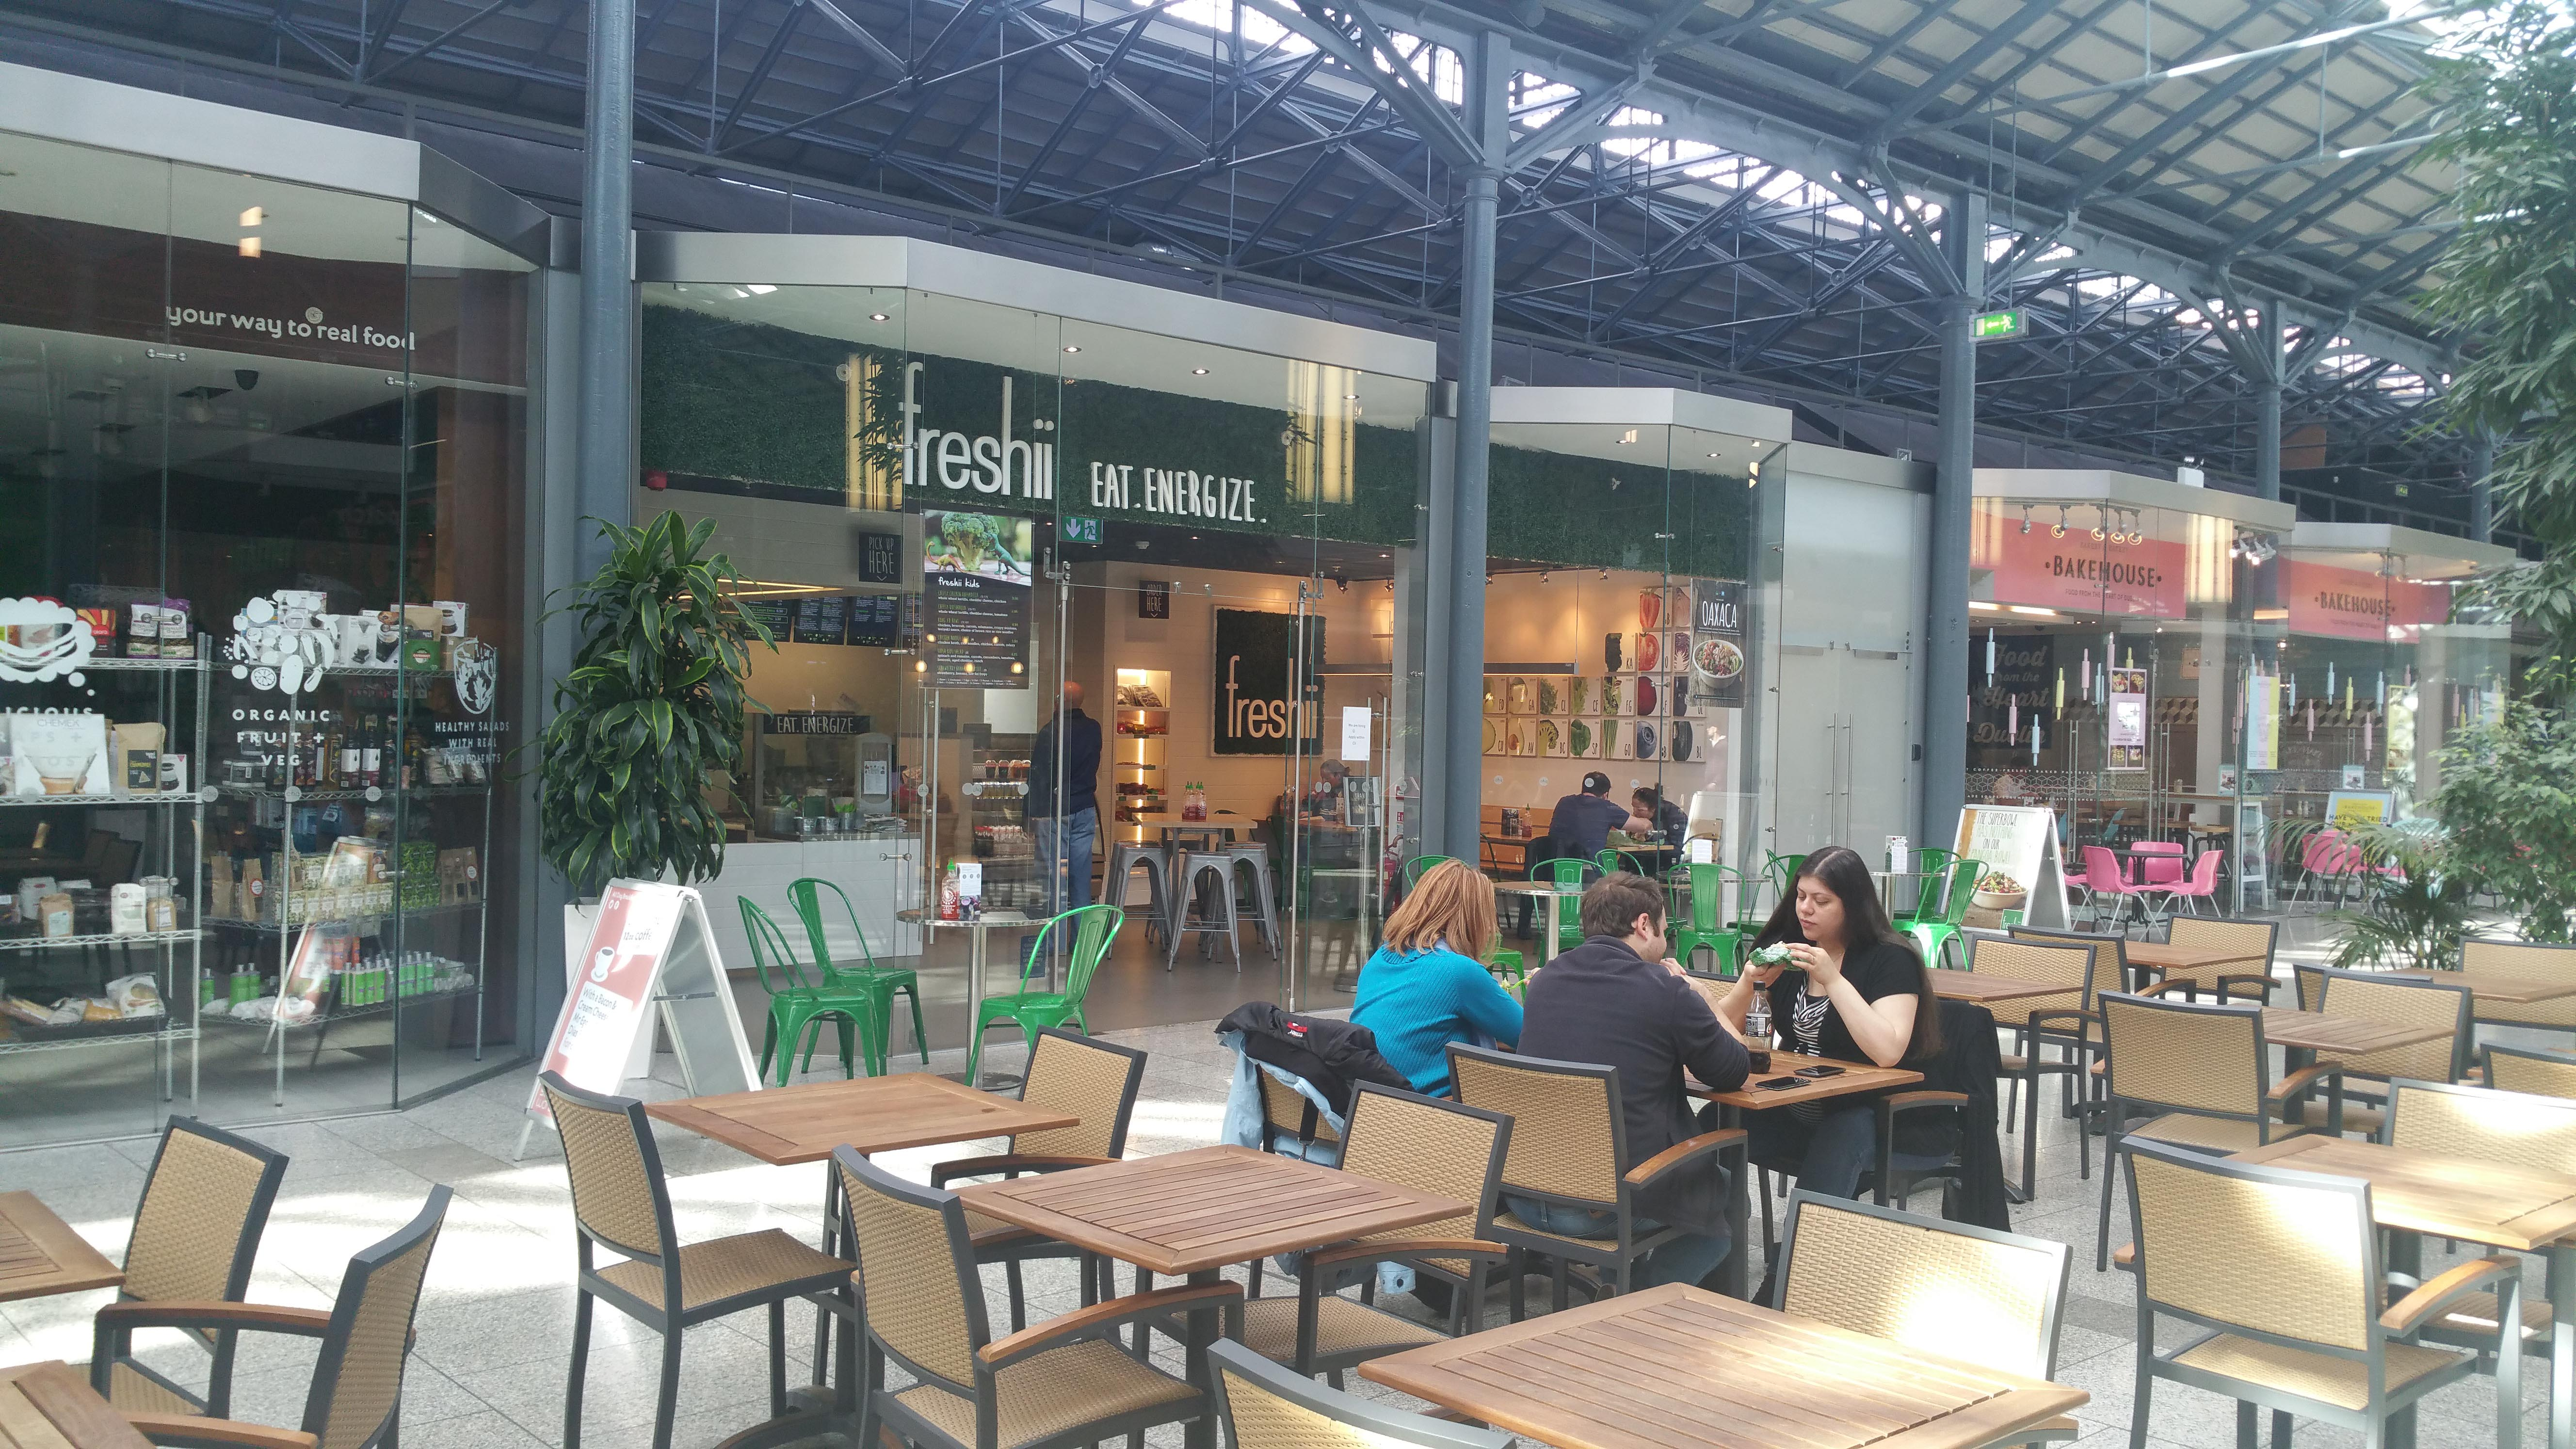 Outdoor seating area of Freshii CHQ